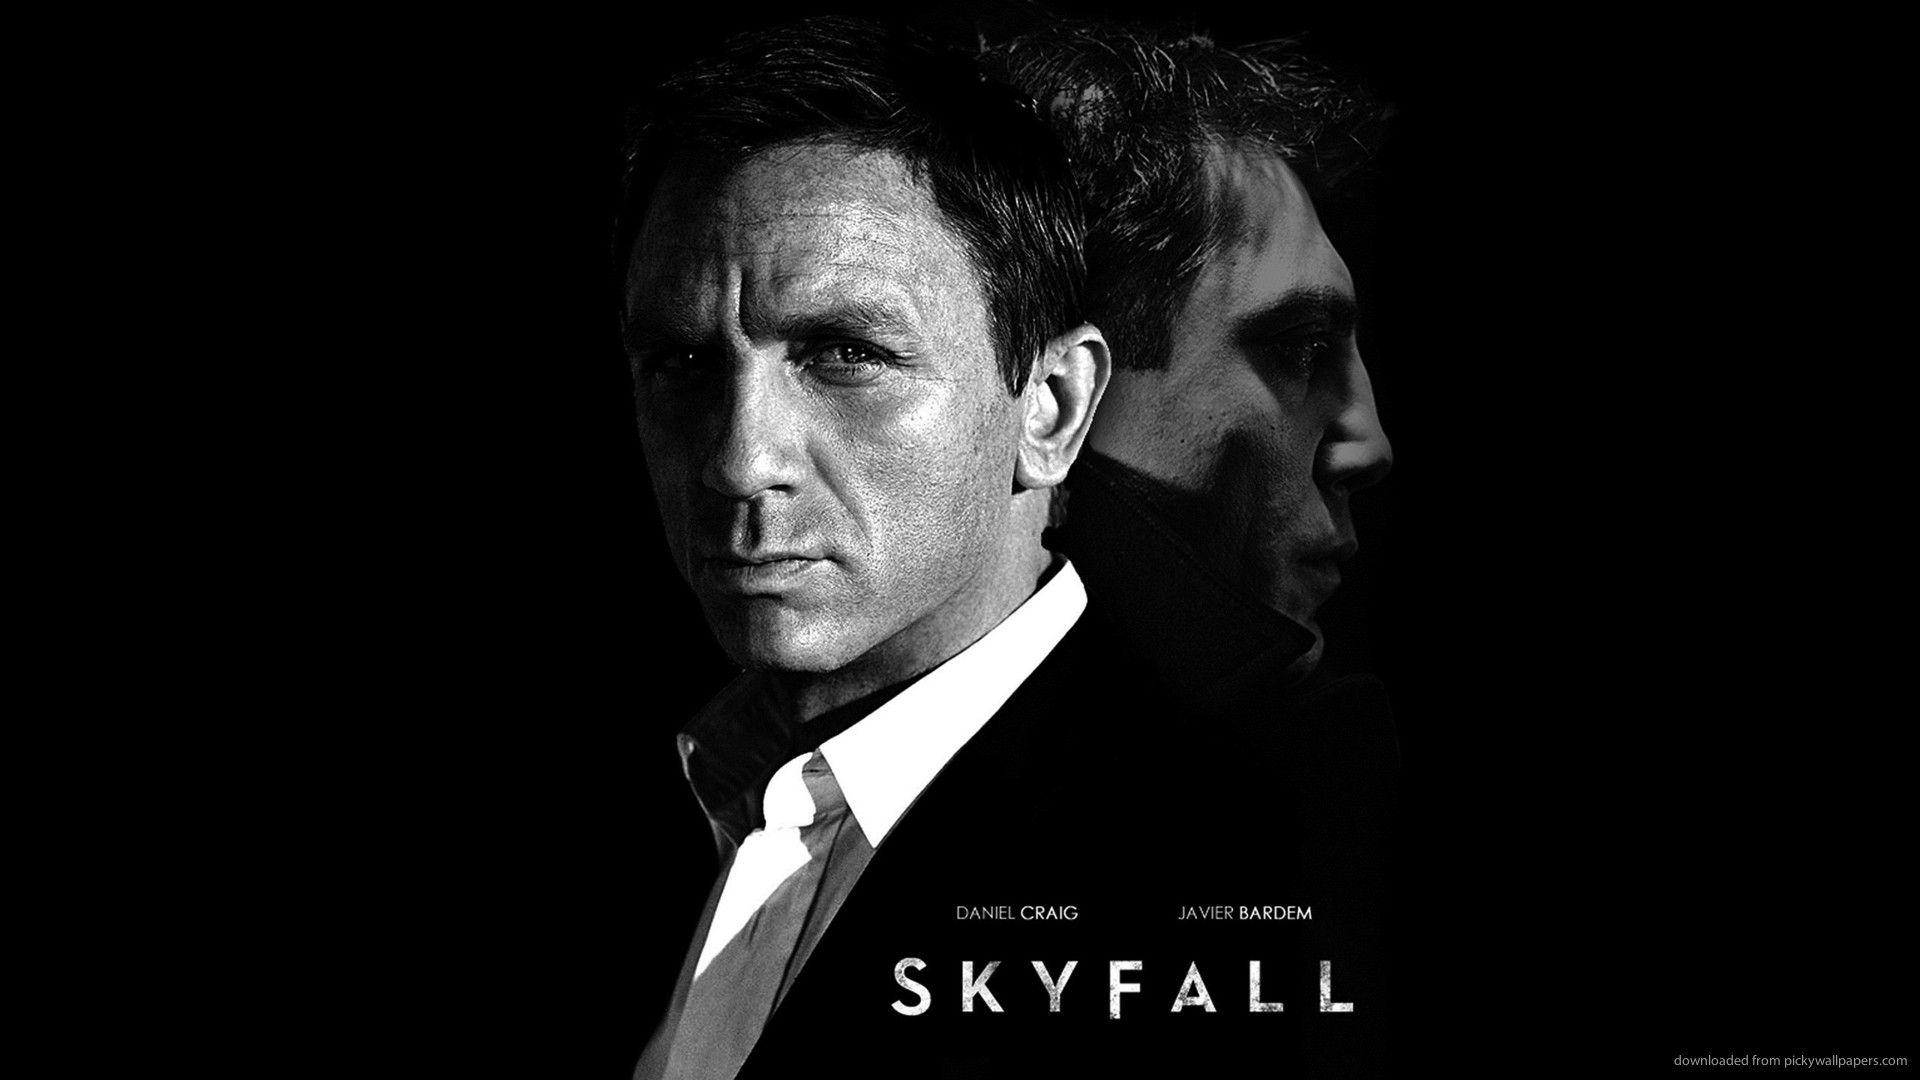 skyfall daniel craig poster wallpaper for samsung galaxy tab